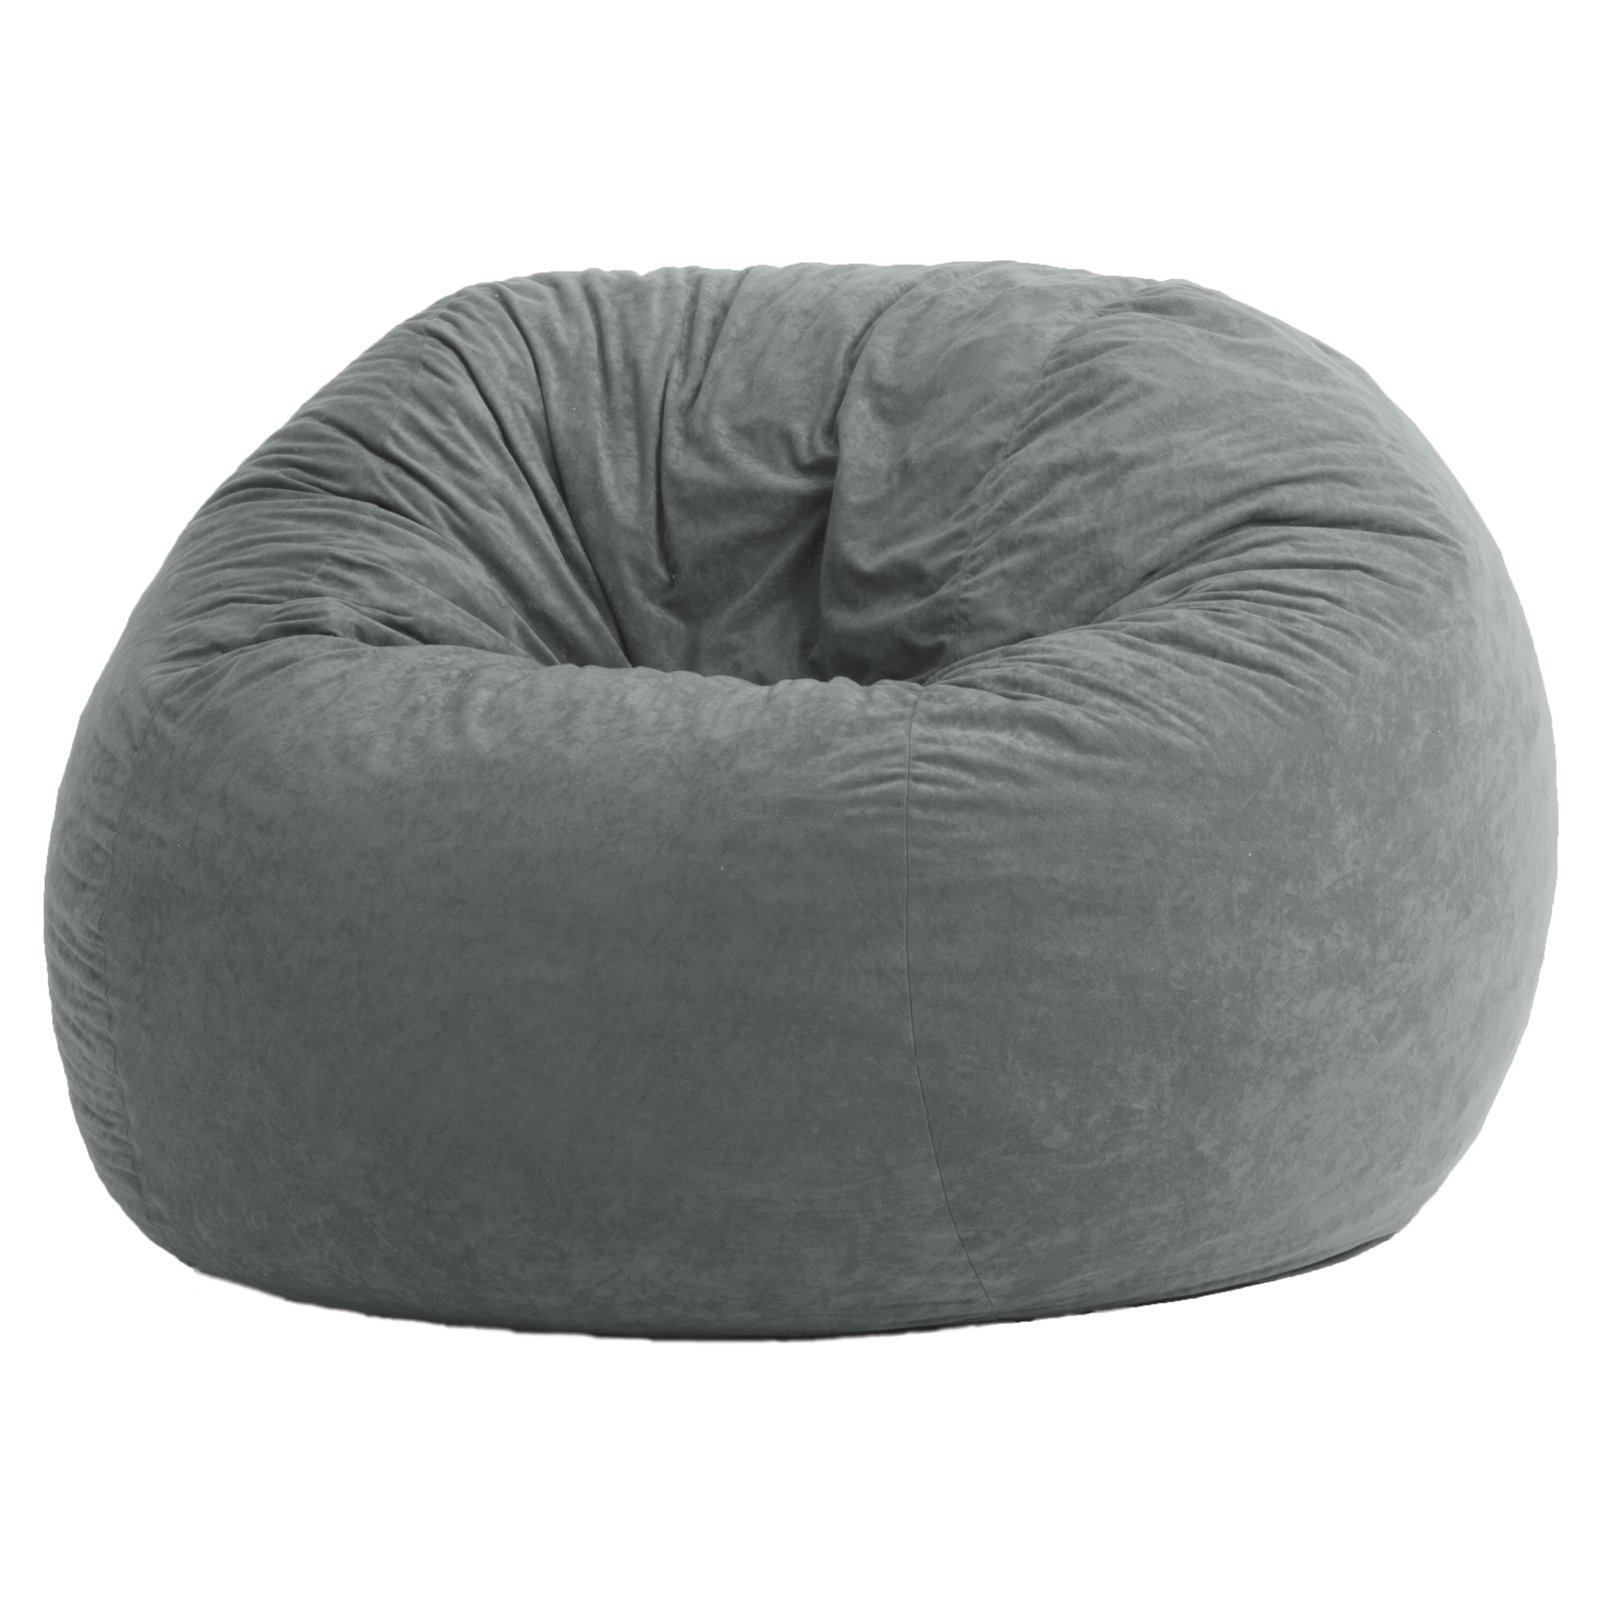 Bean Bags Chair Big Joe Large 4 Fuf Bean Bag Chair Multiple Colors Fabrics